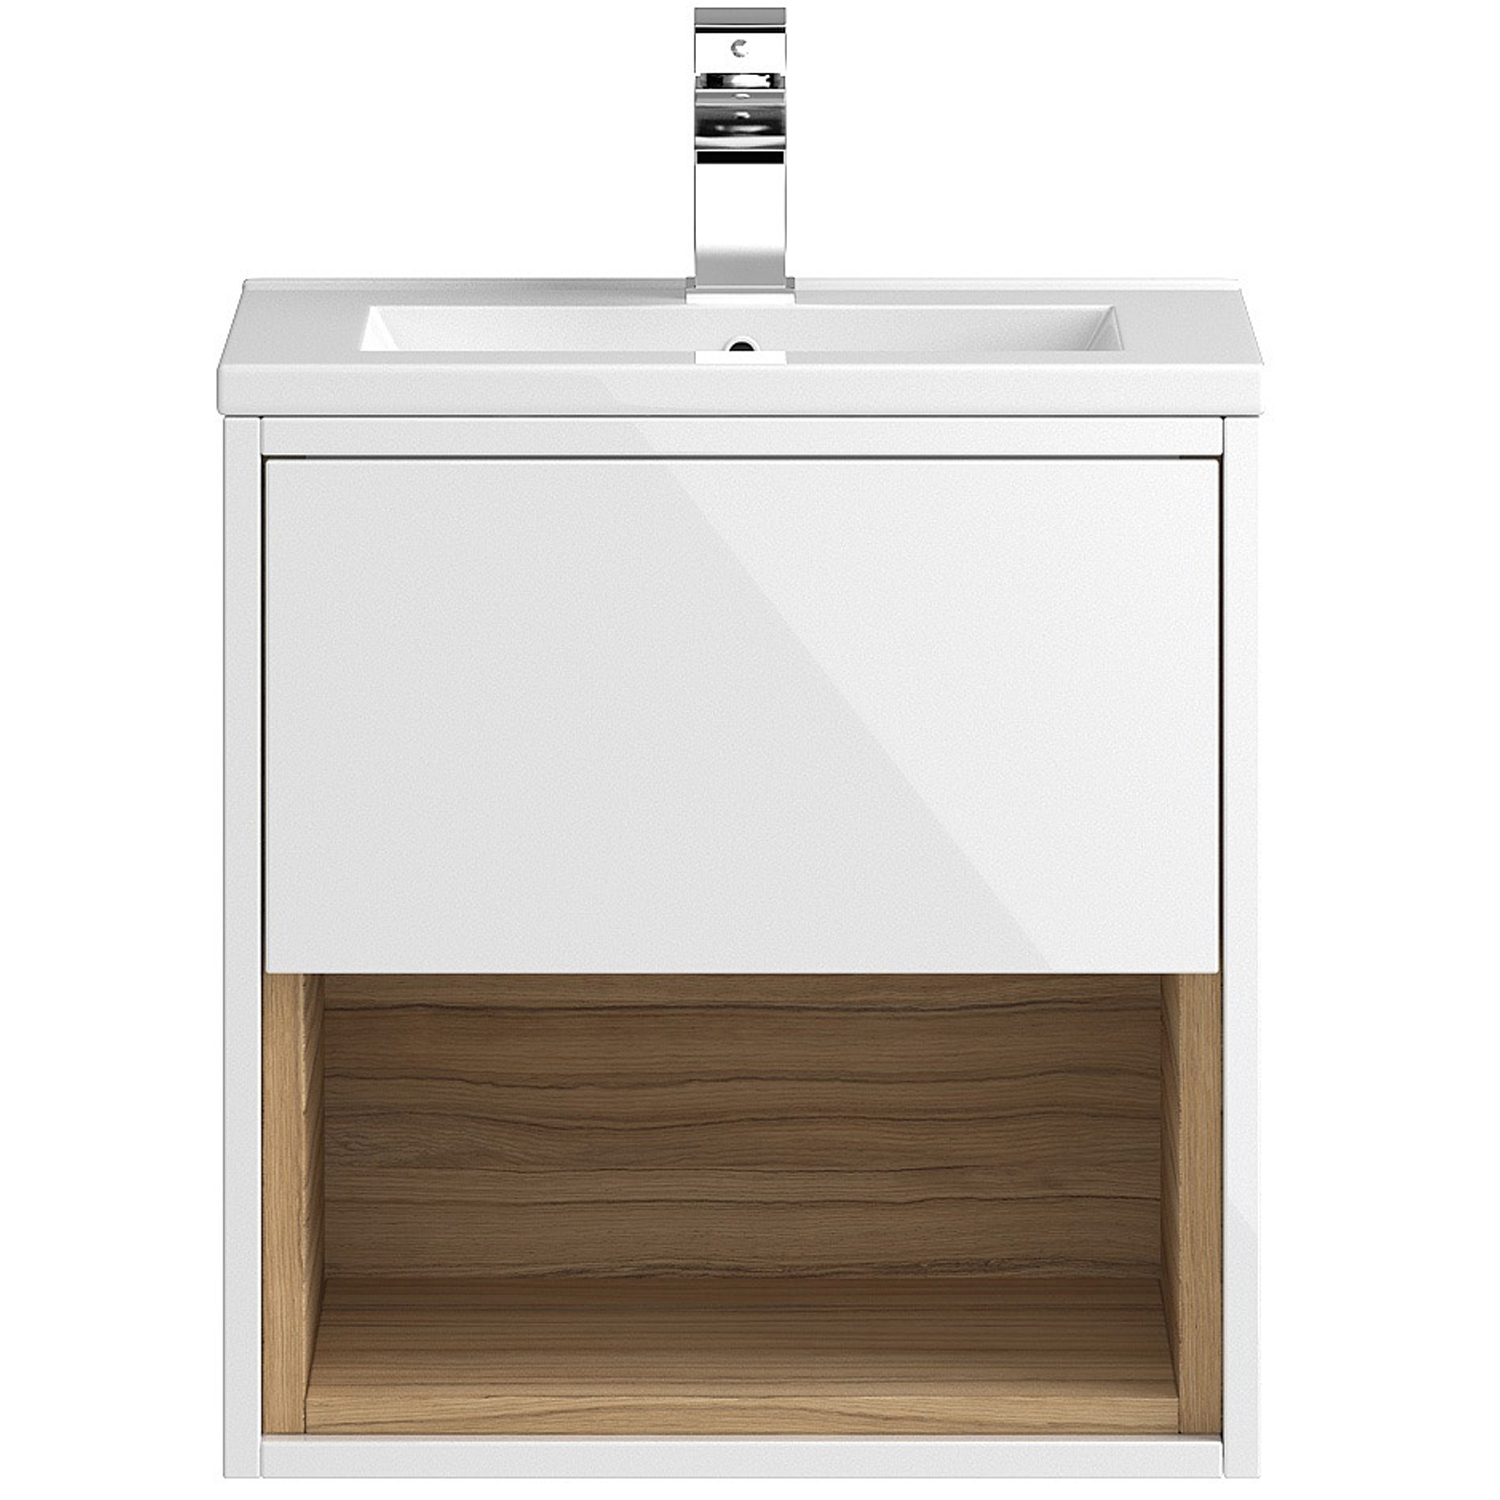 https://www.mepstock.co.uk/admin/images/hudson-reed_White-basin1-500mm_cabinet_wall-hung-CST984E.jpg